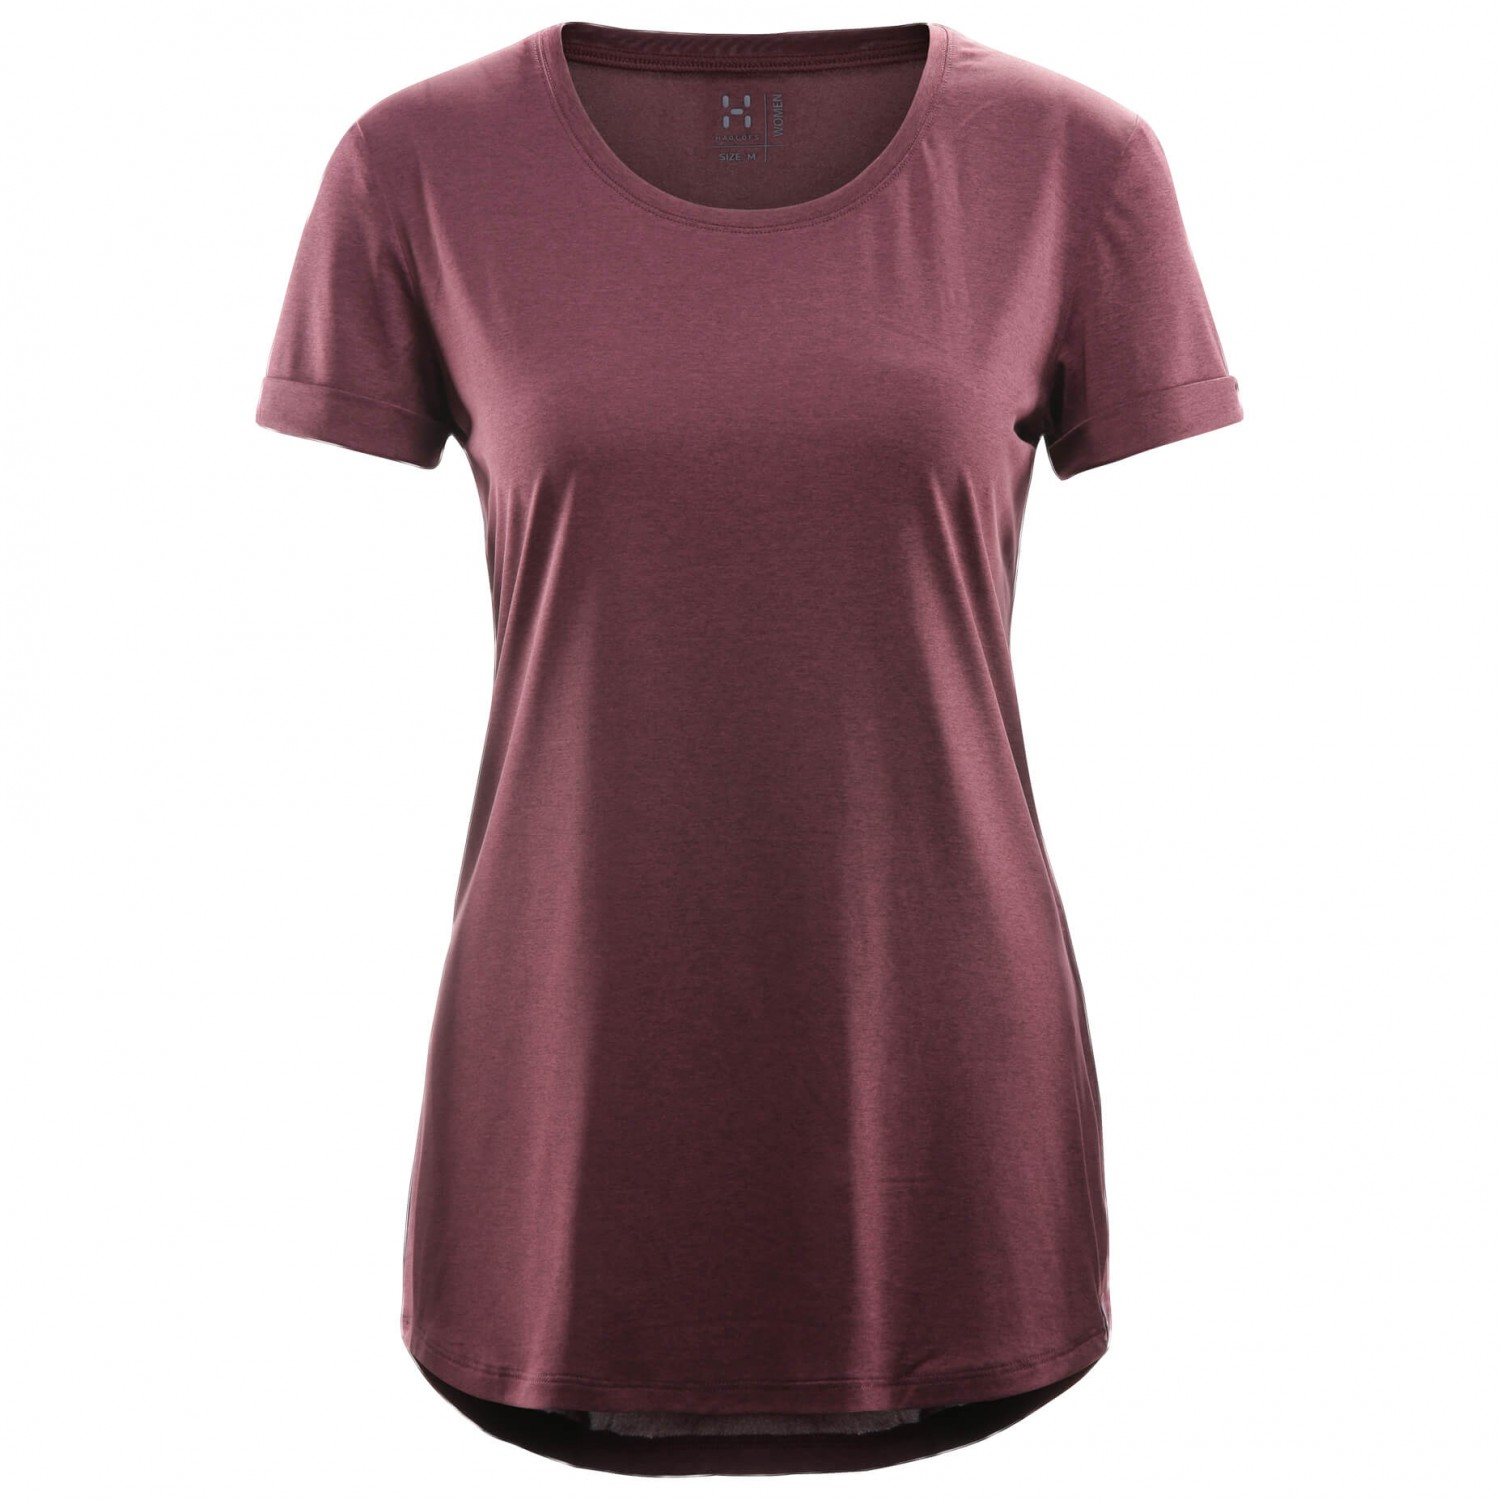 11c5702fa Haglöfs Ridge Hike Tee - T-Shirt Women's | Buy online | Alpinetrek.co.uk